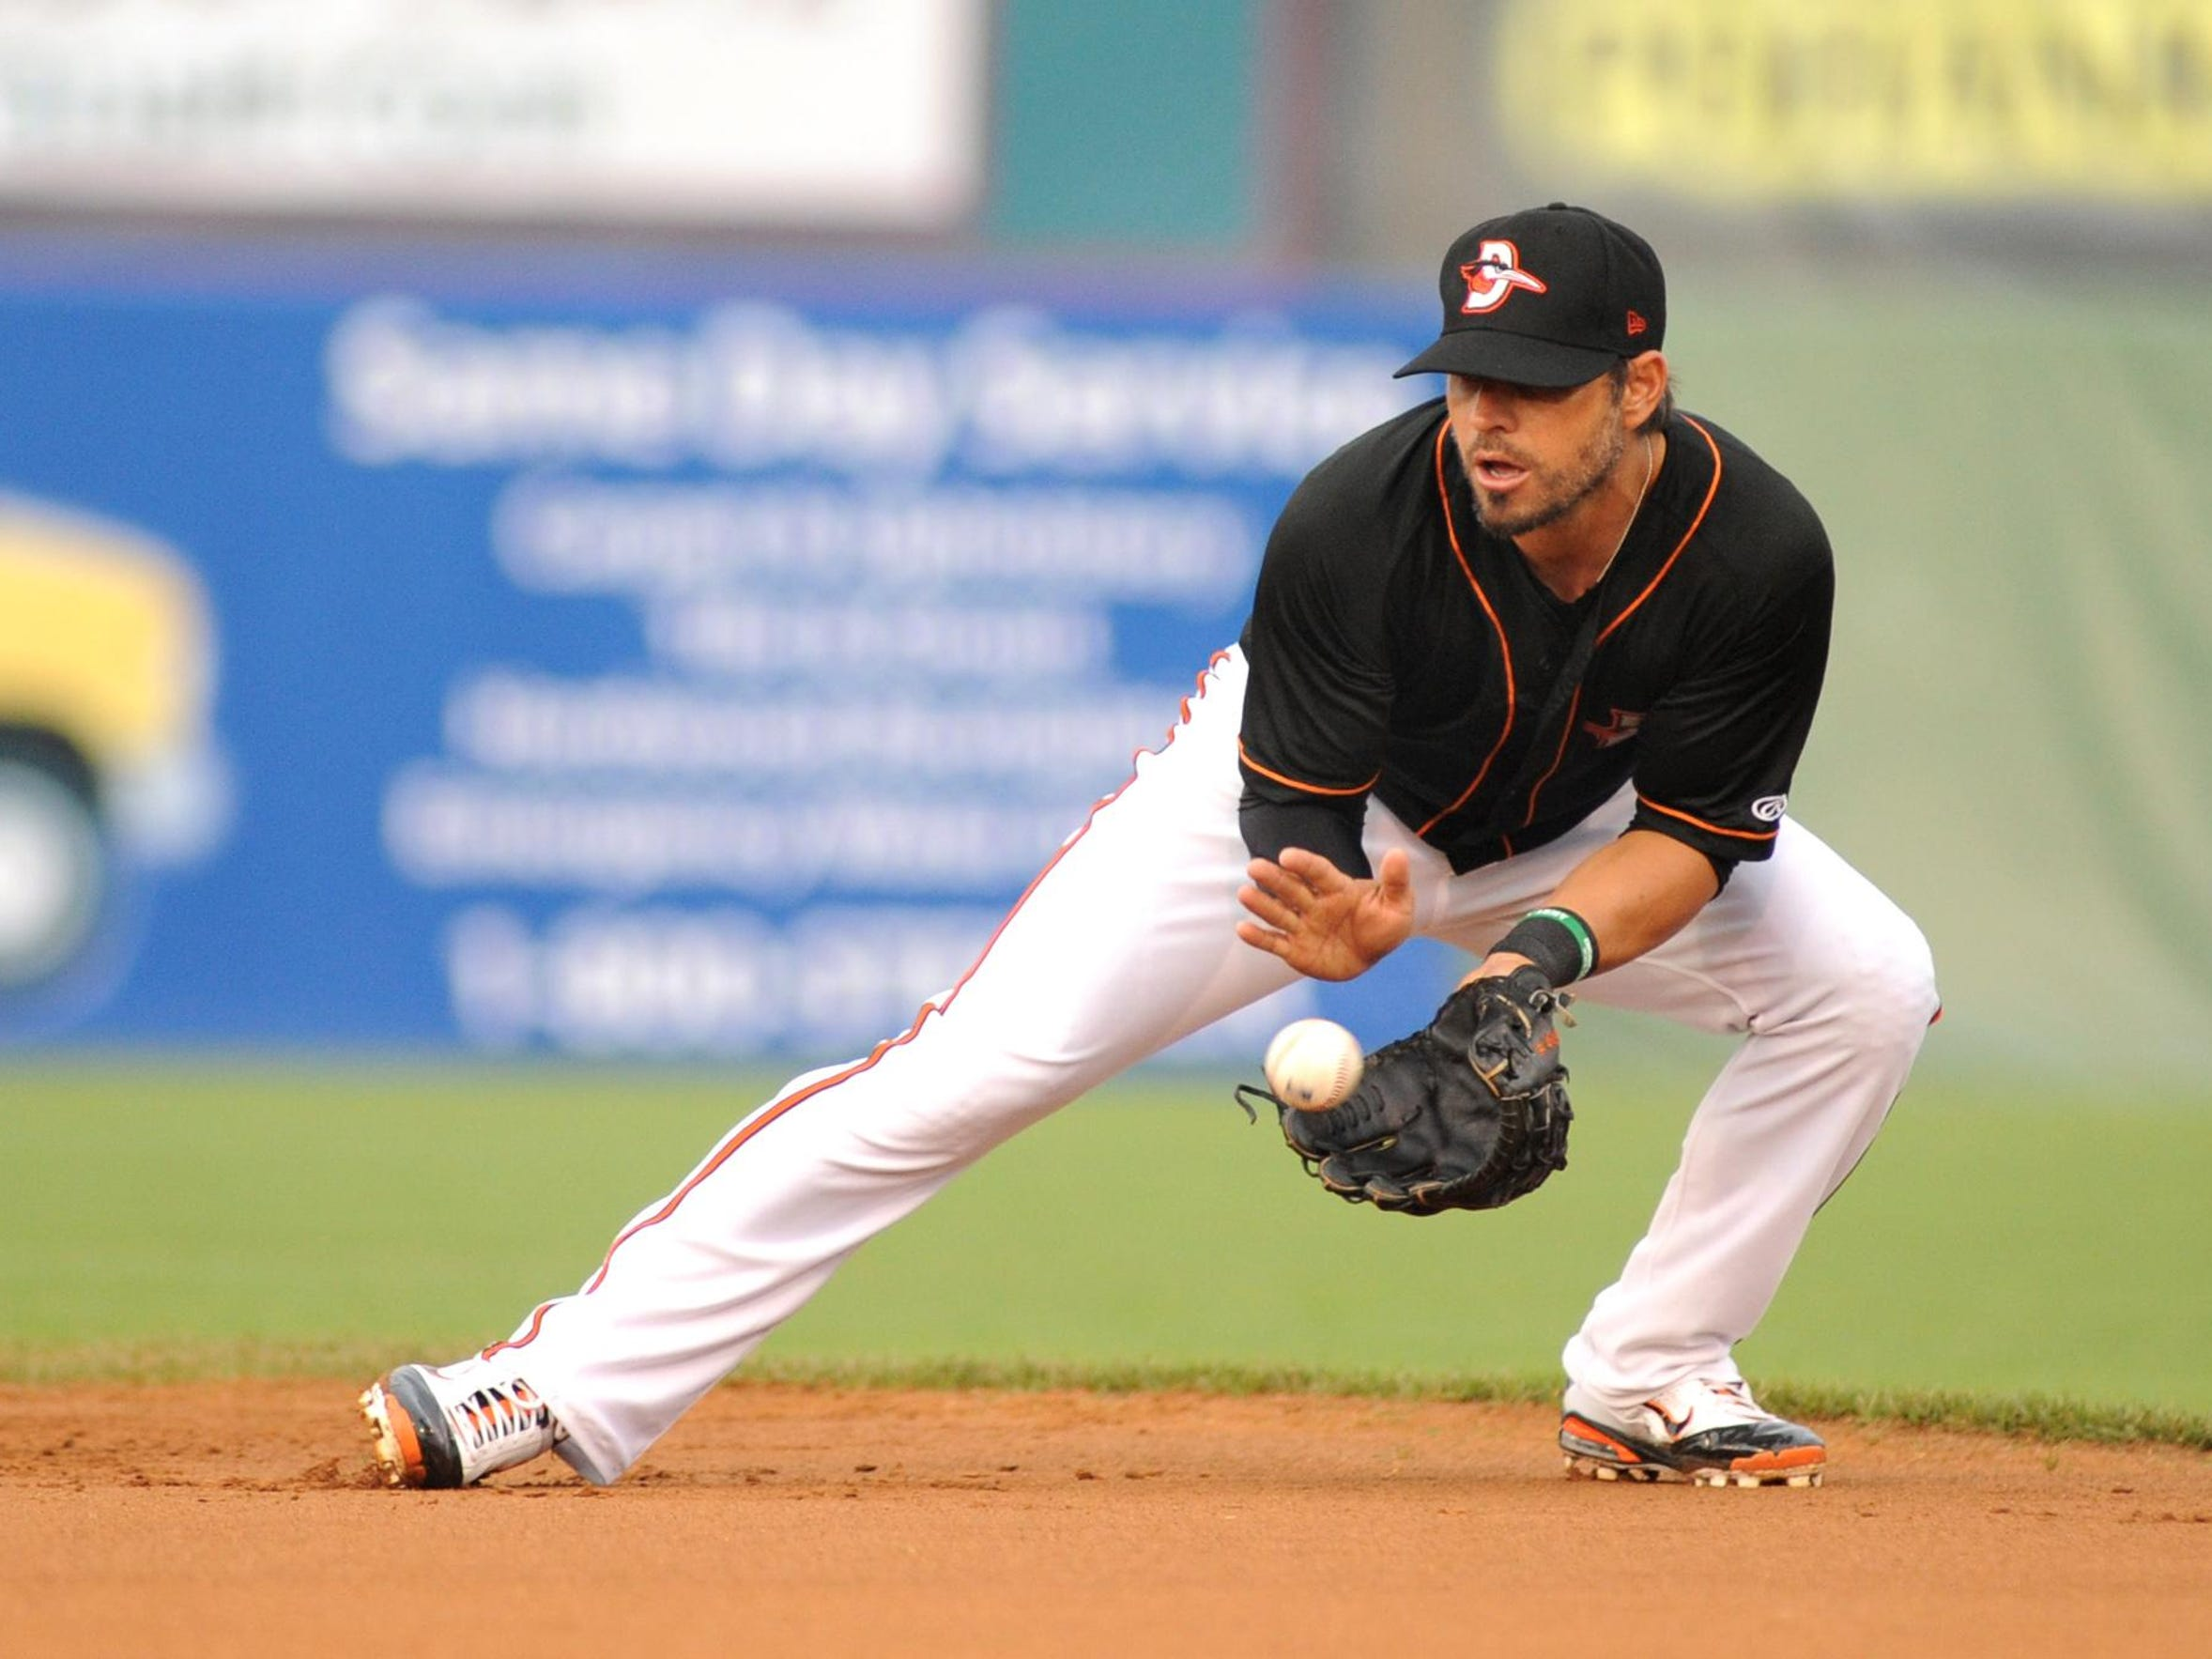 Brian Roberts fields a grounder for the Shorebirds